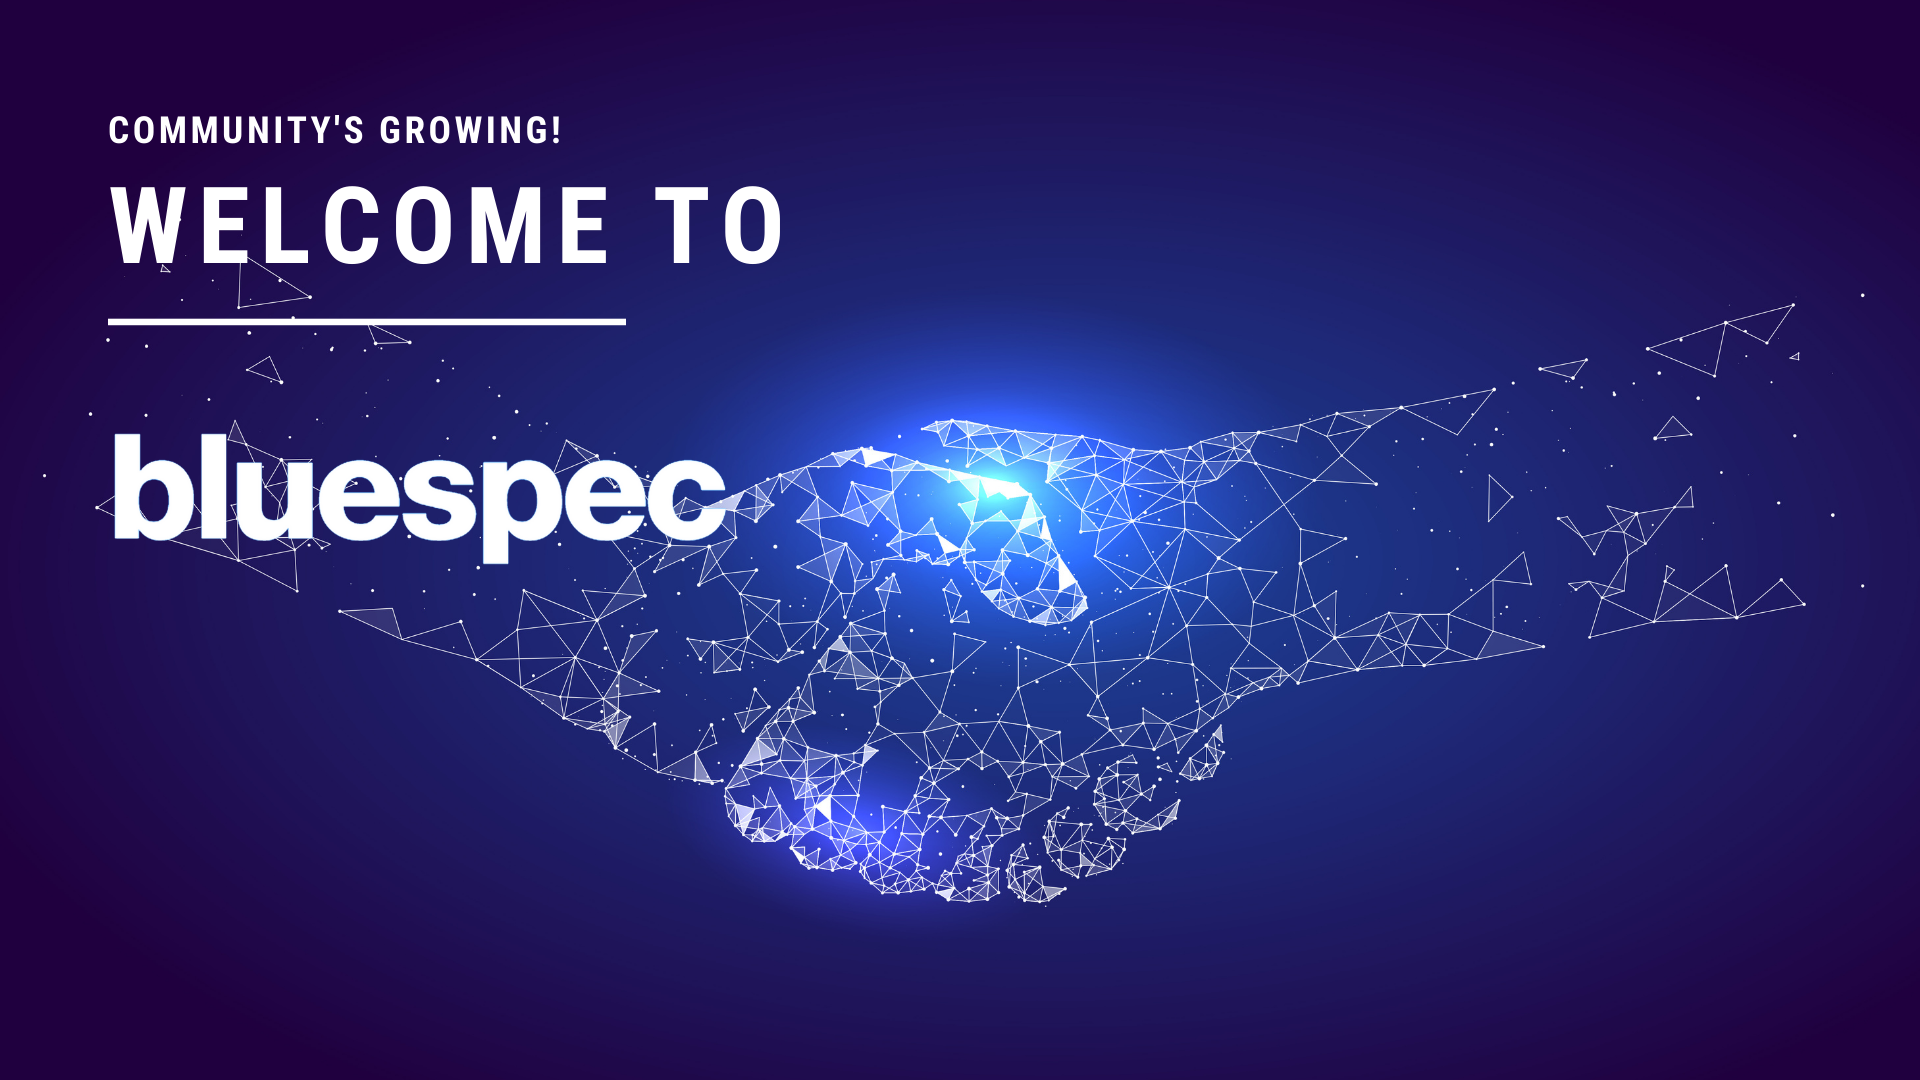 WELCOME TO BLUESPEC